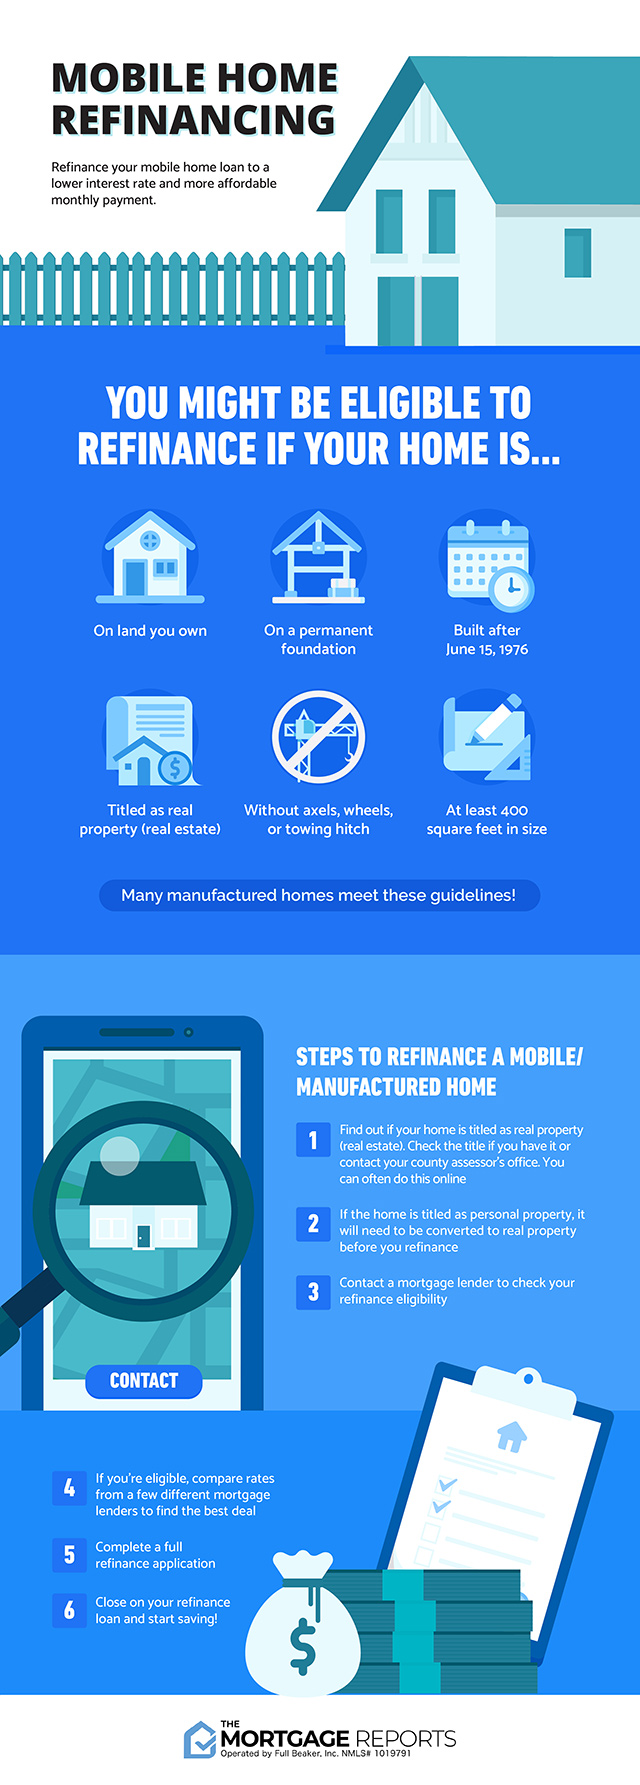 Infographic showing mobile home loan refinance options. Learn what's required to refinance a mobile or manufactured home, and how the process works.